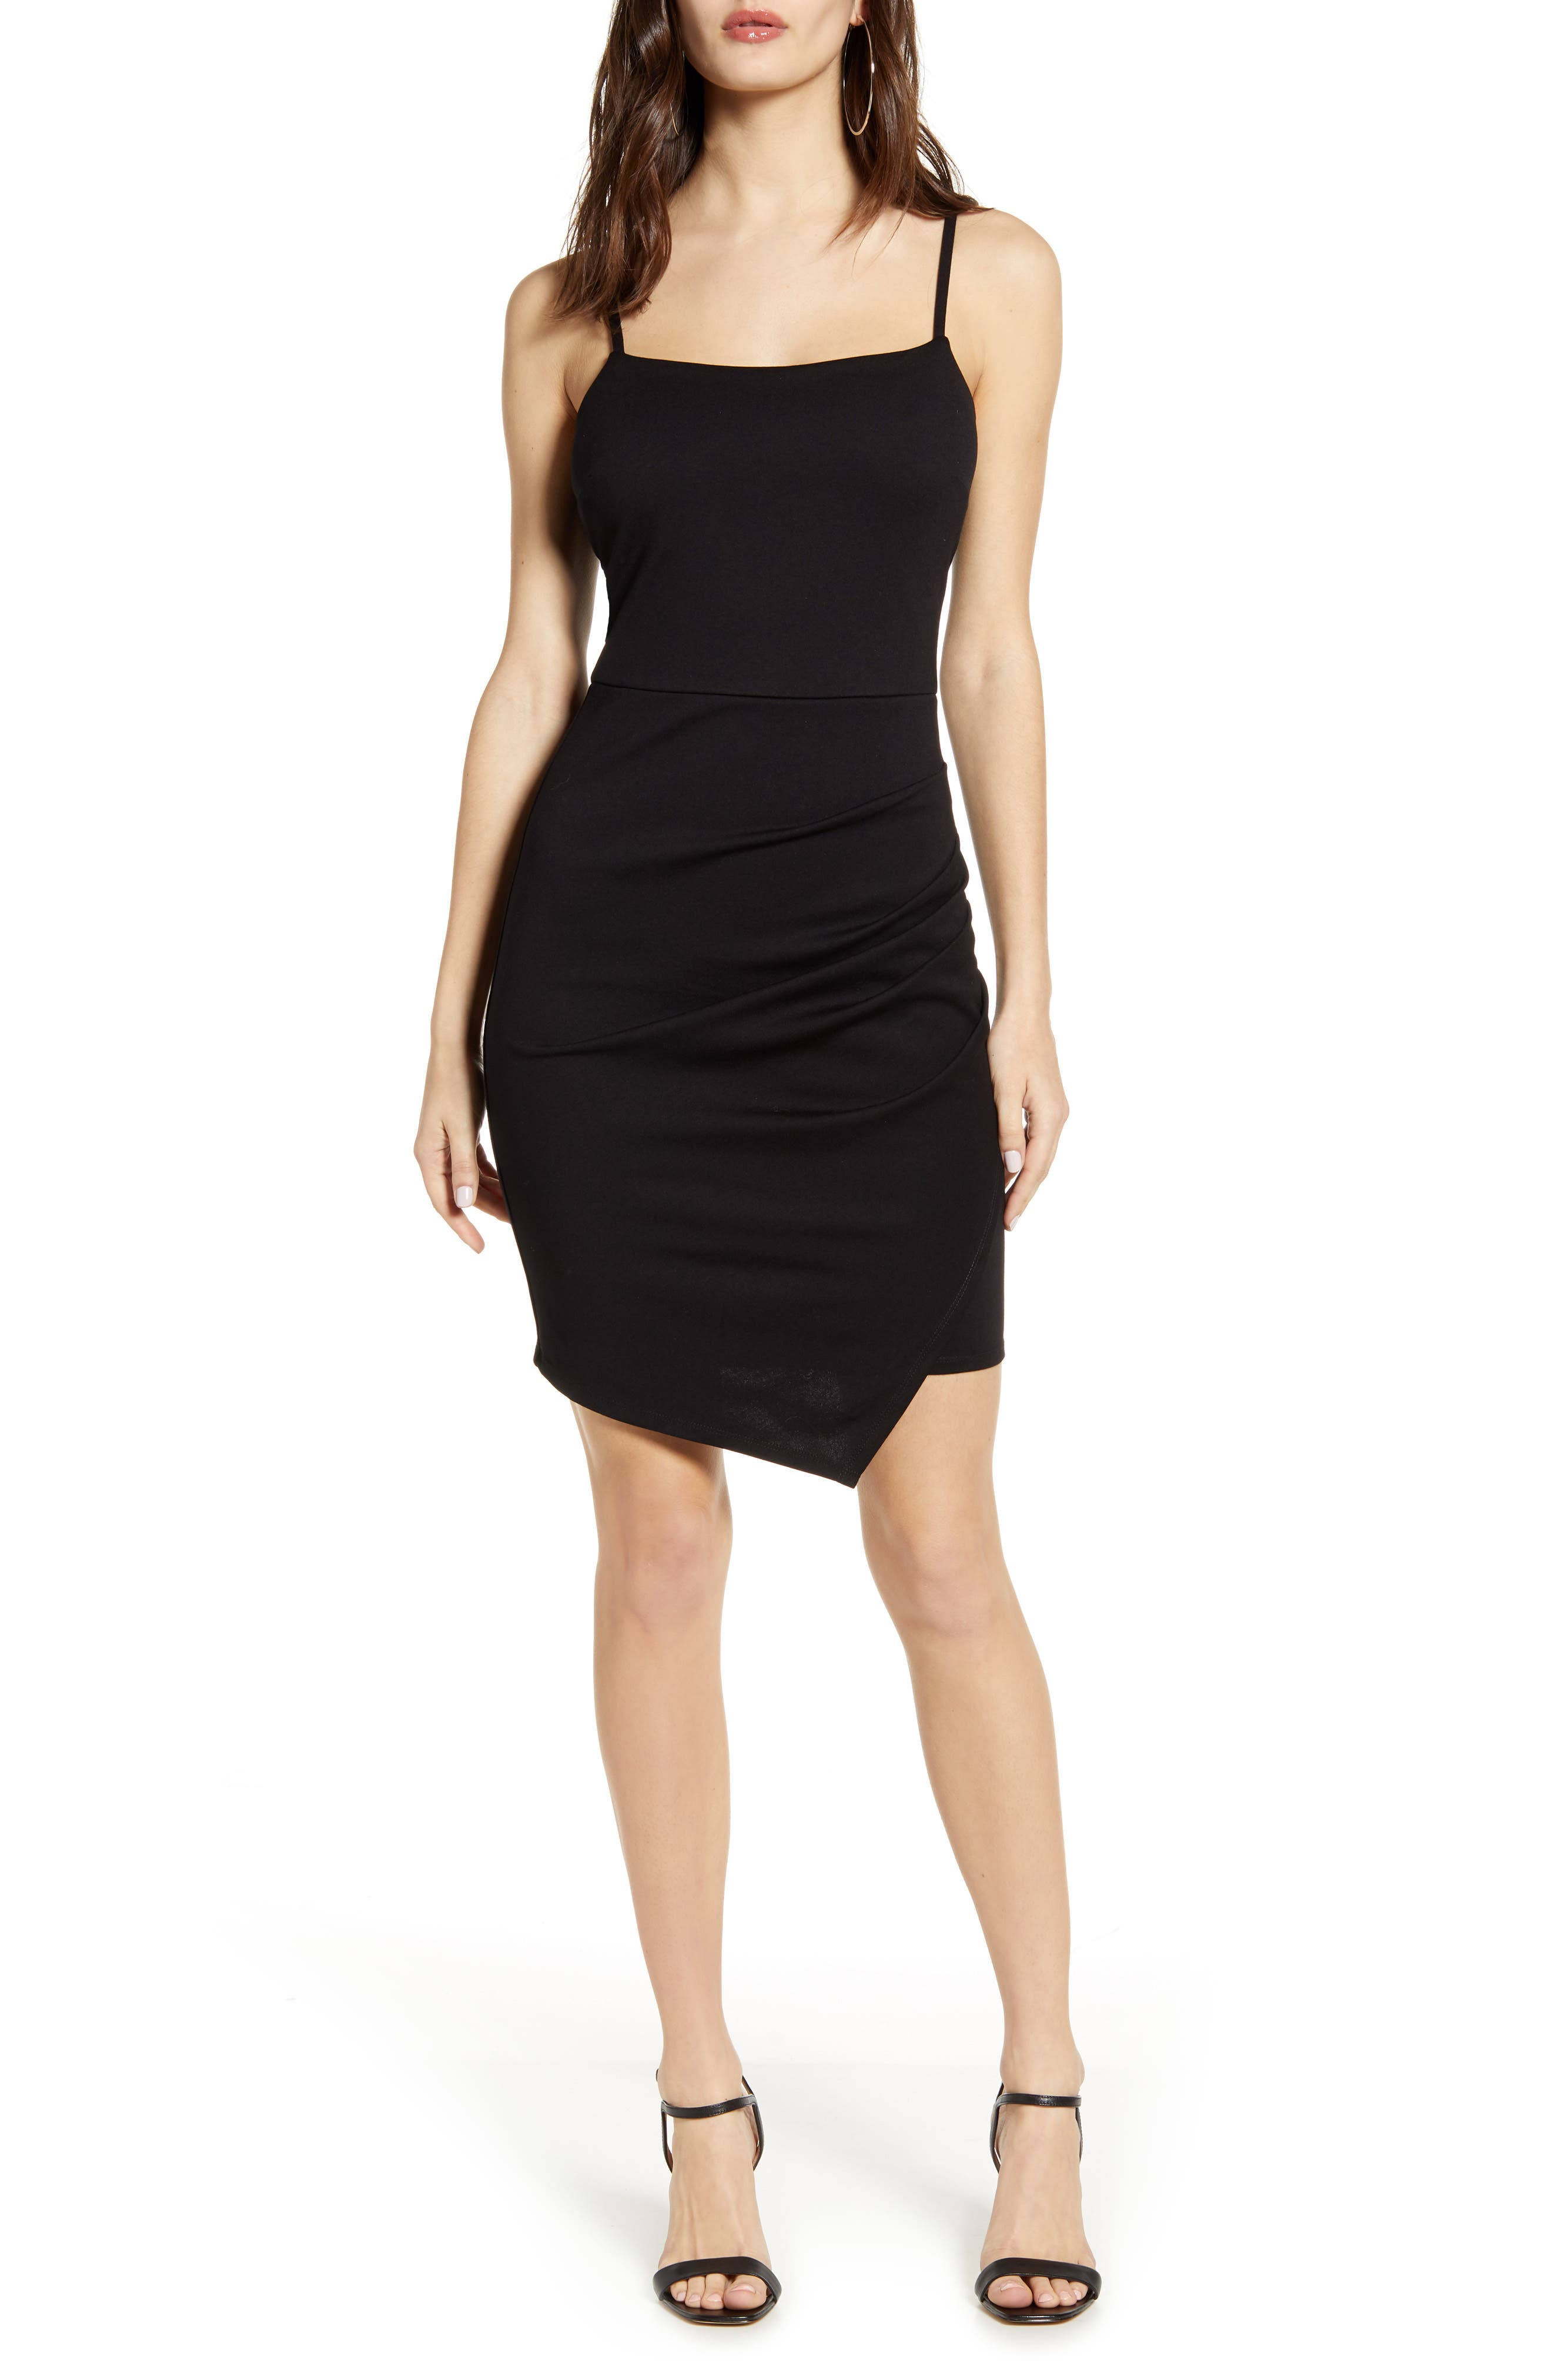 Love, Nickie Lew Ruched Square Neck Dress, Black